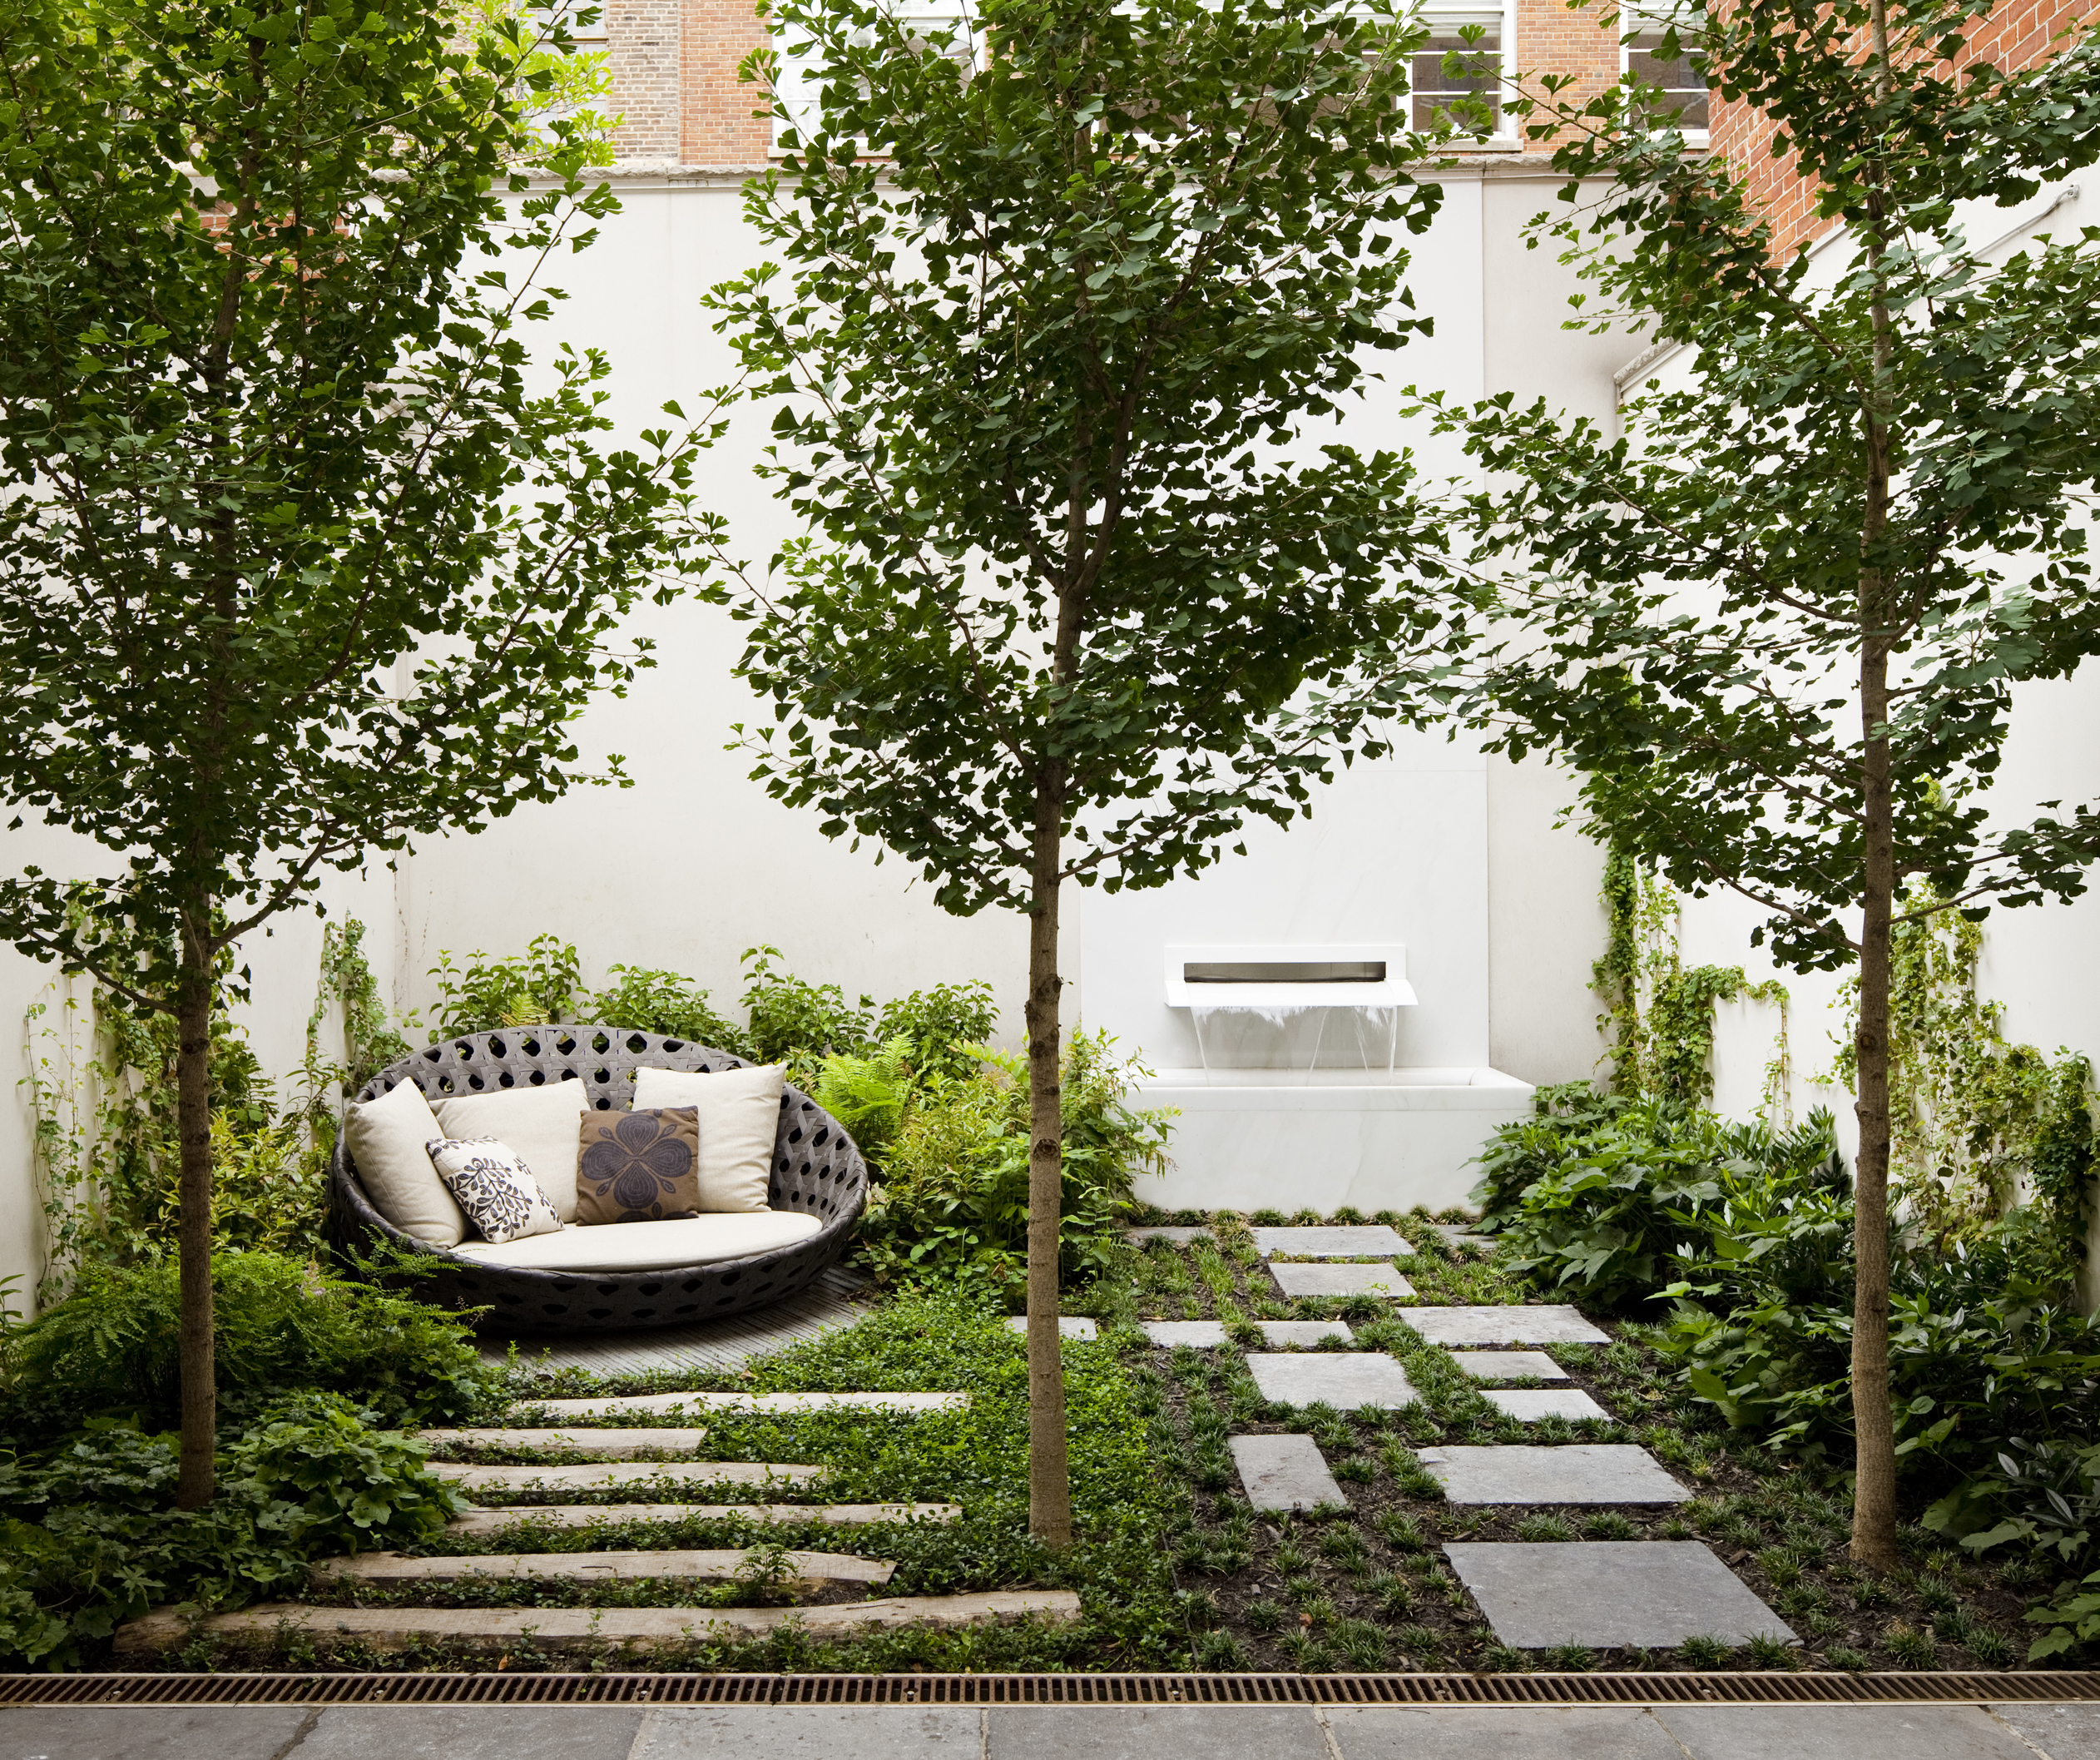 Asla 2011 professional awards carnegie hill house for Jardines disenos